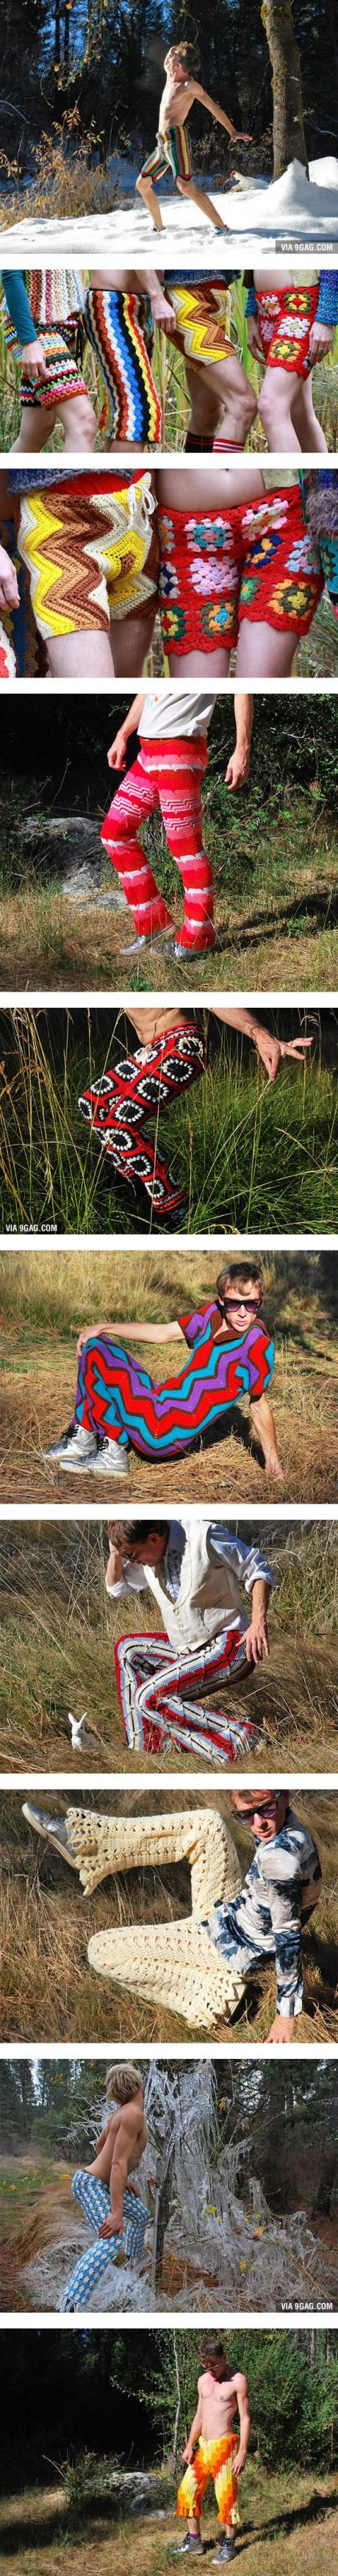 New Fashion For Men: Crochet Shorts Made From Recycled Vintage Blankets                                                                                                                                                                                 More